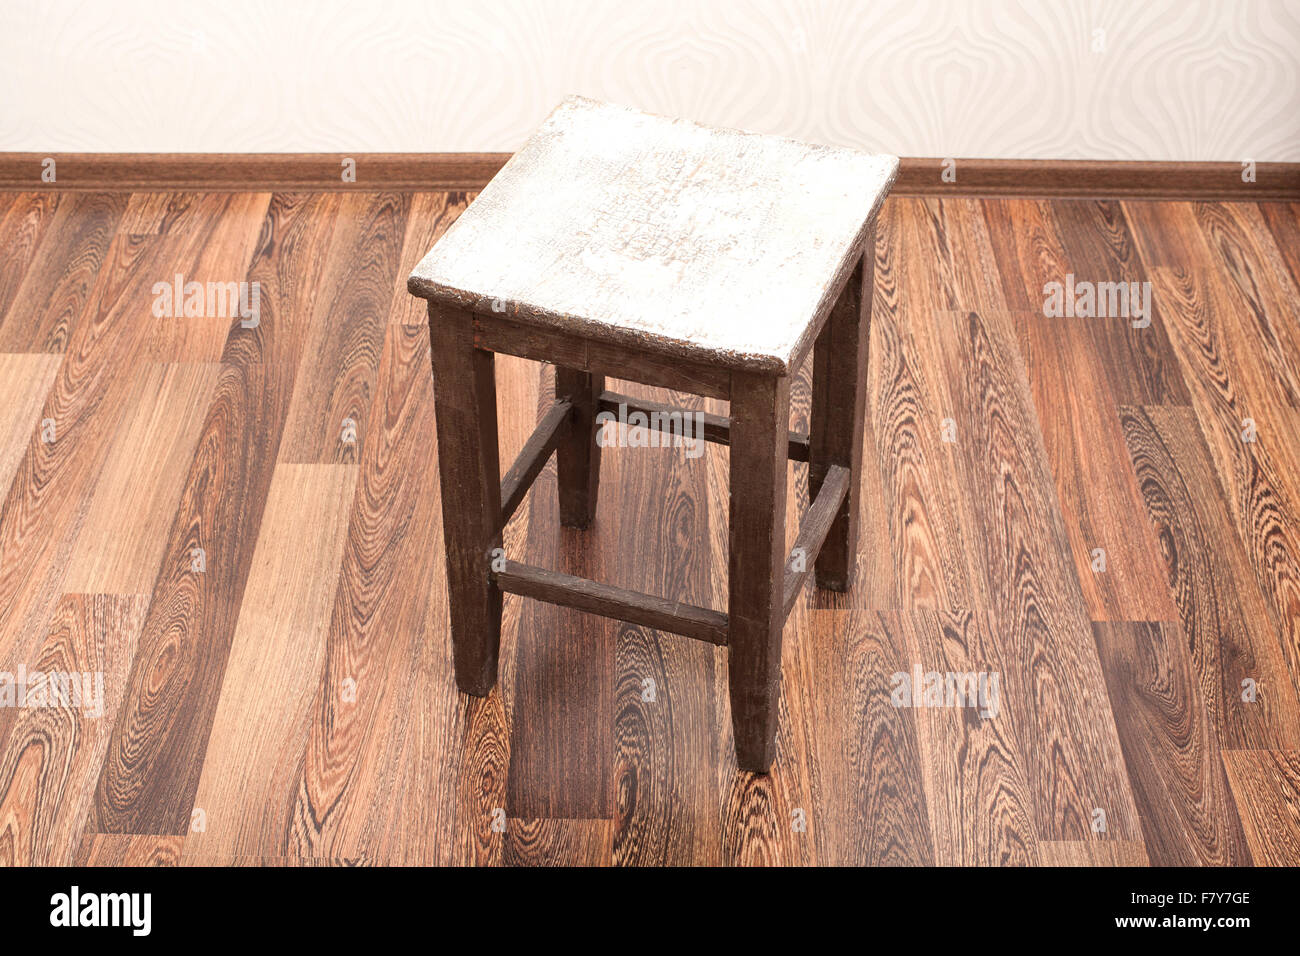 Rustic wooden stool in room - Stock Image